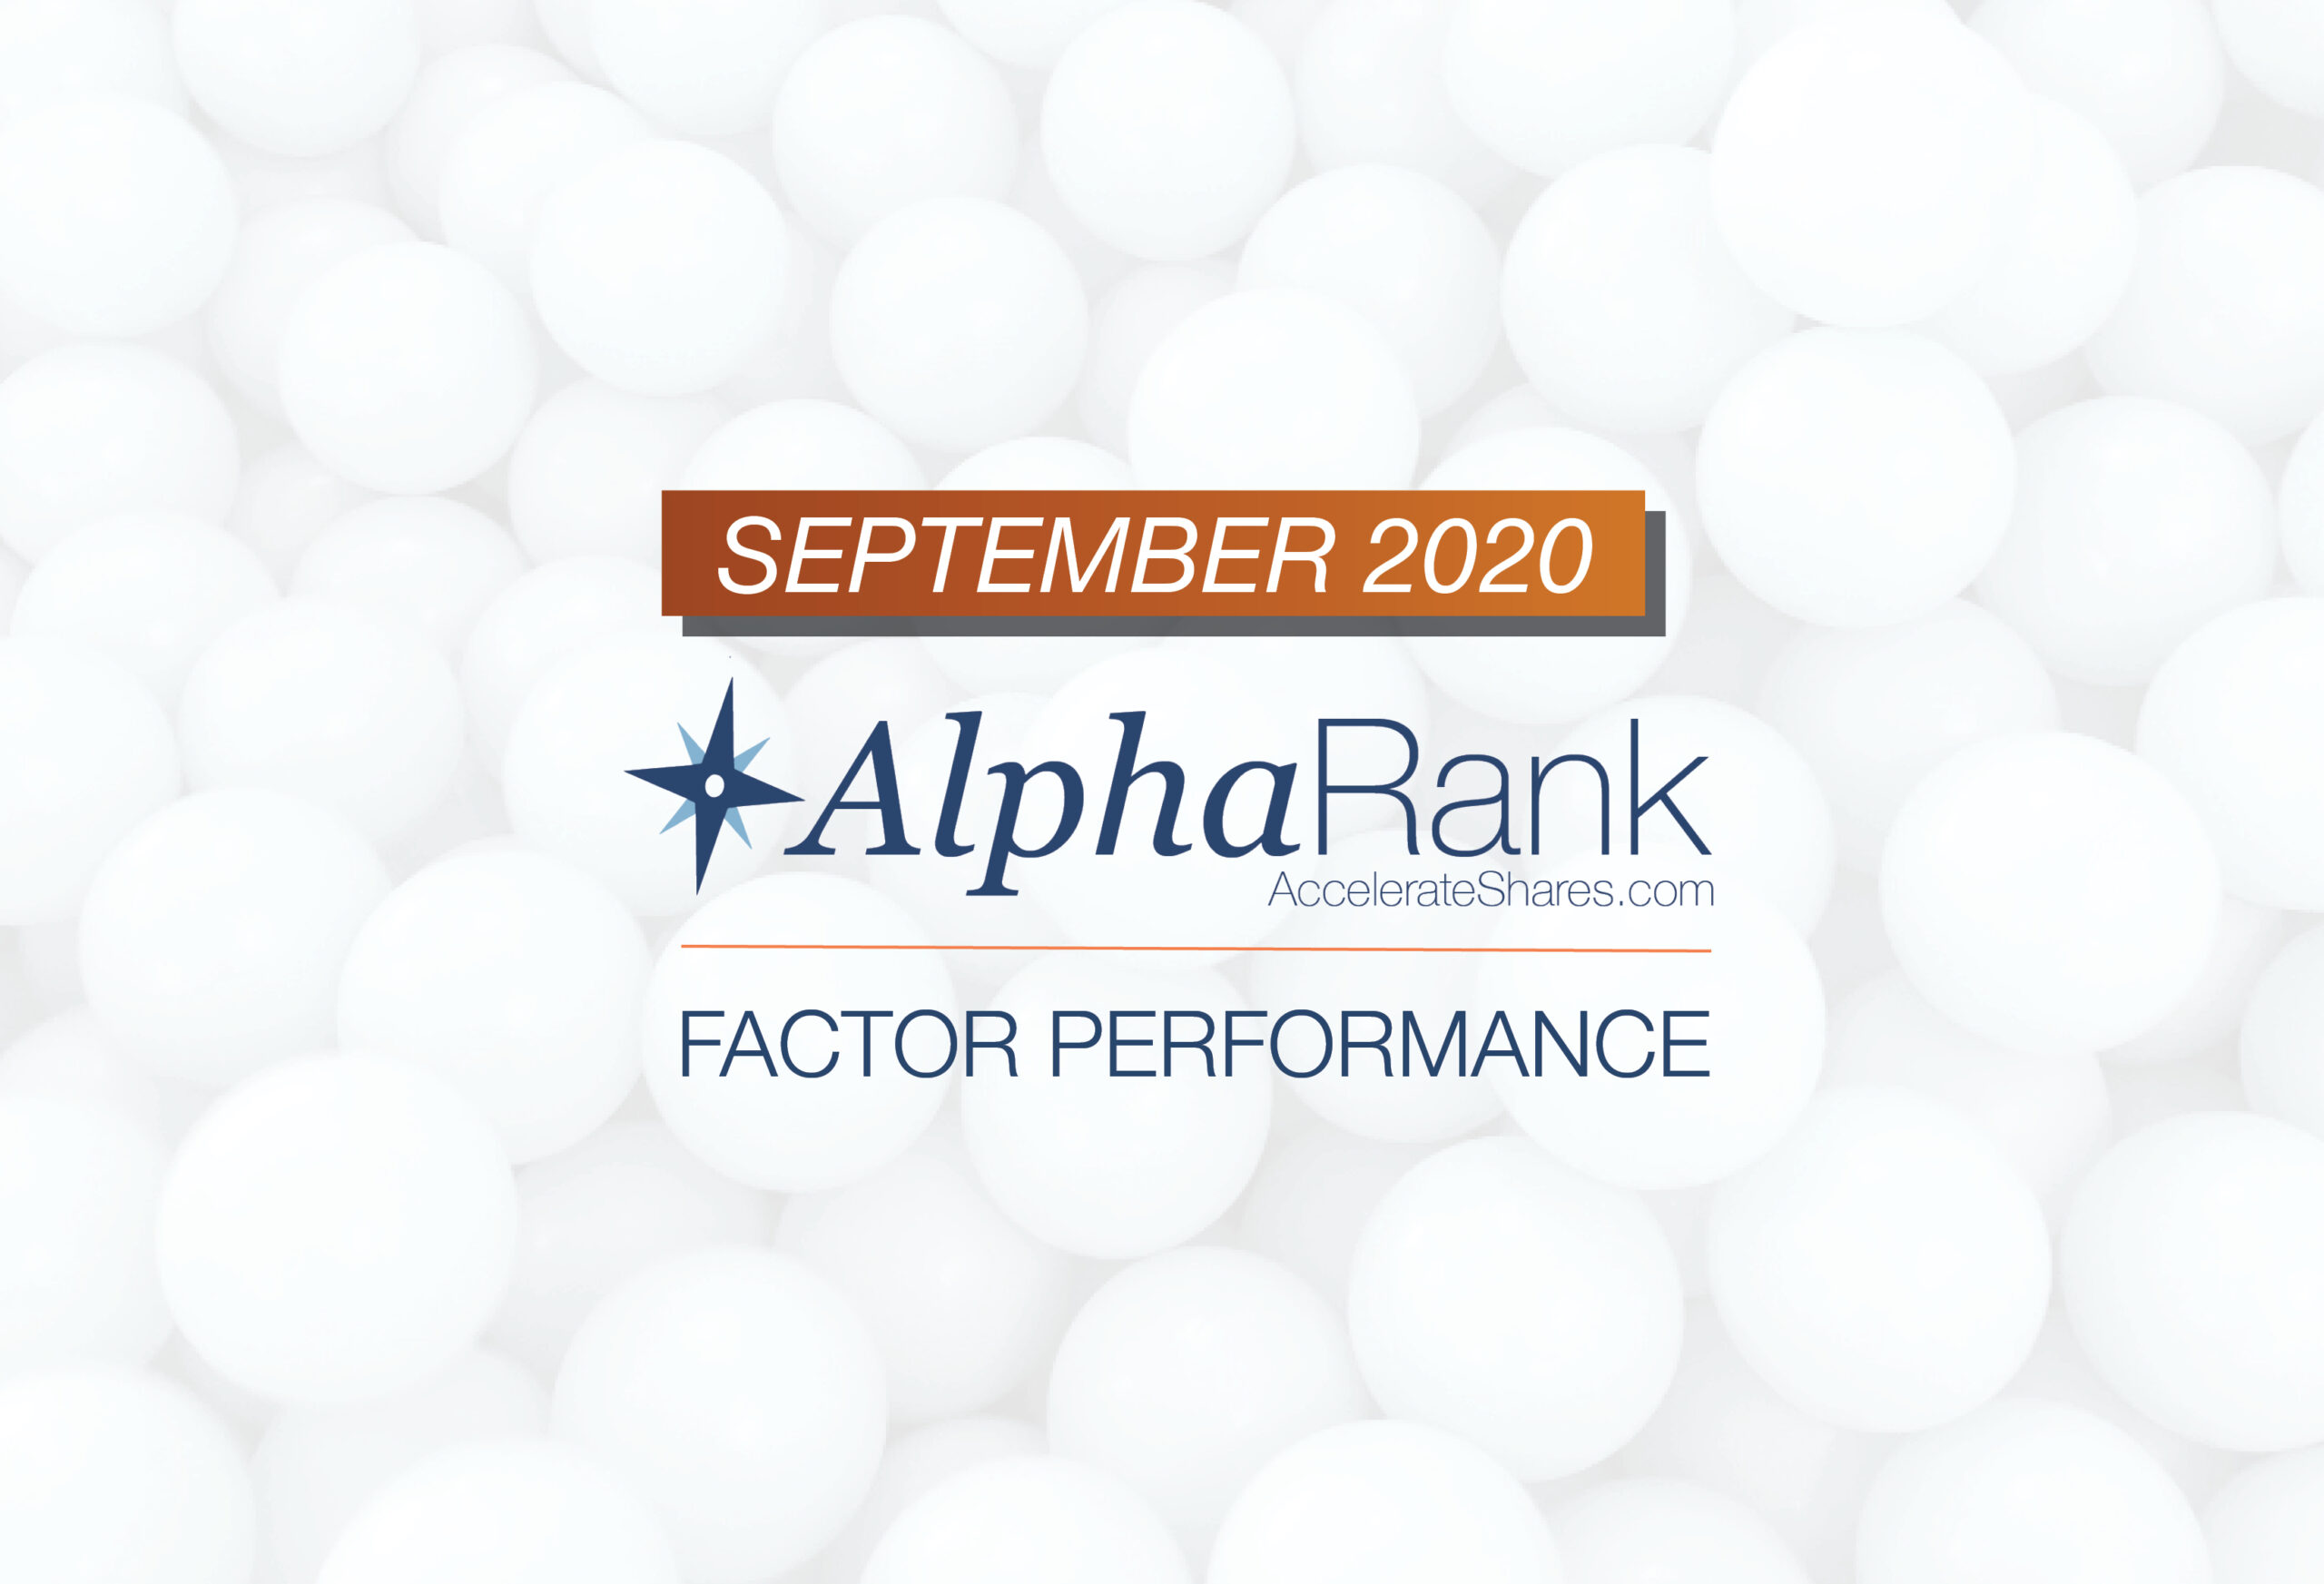 AlphaRank Factor Performance – September 2020